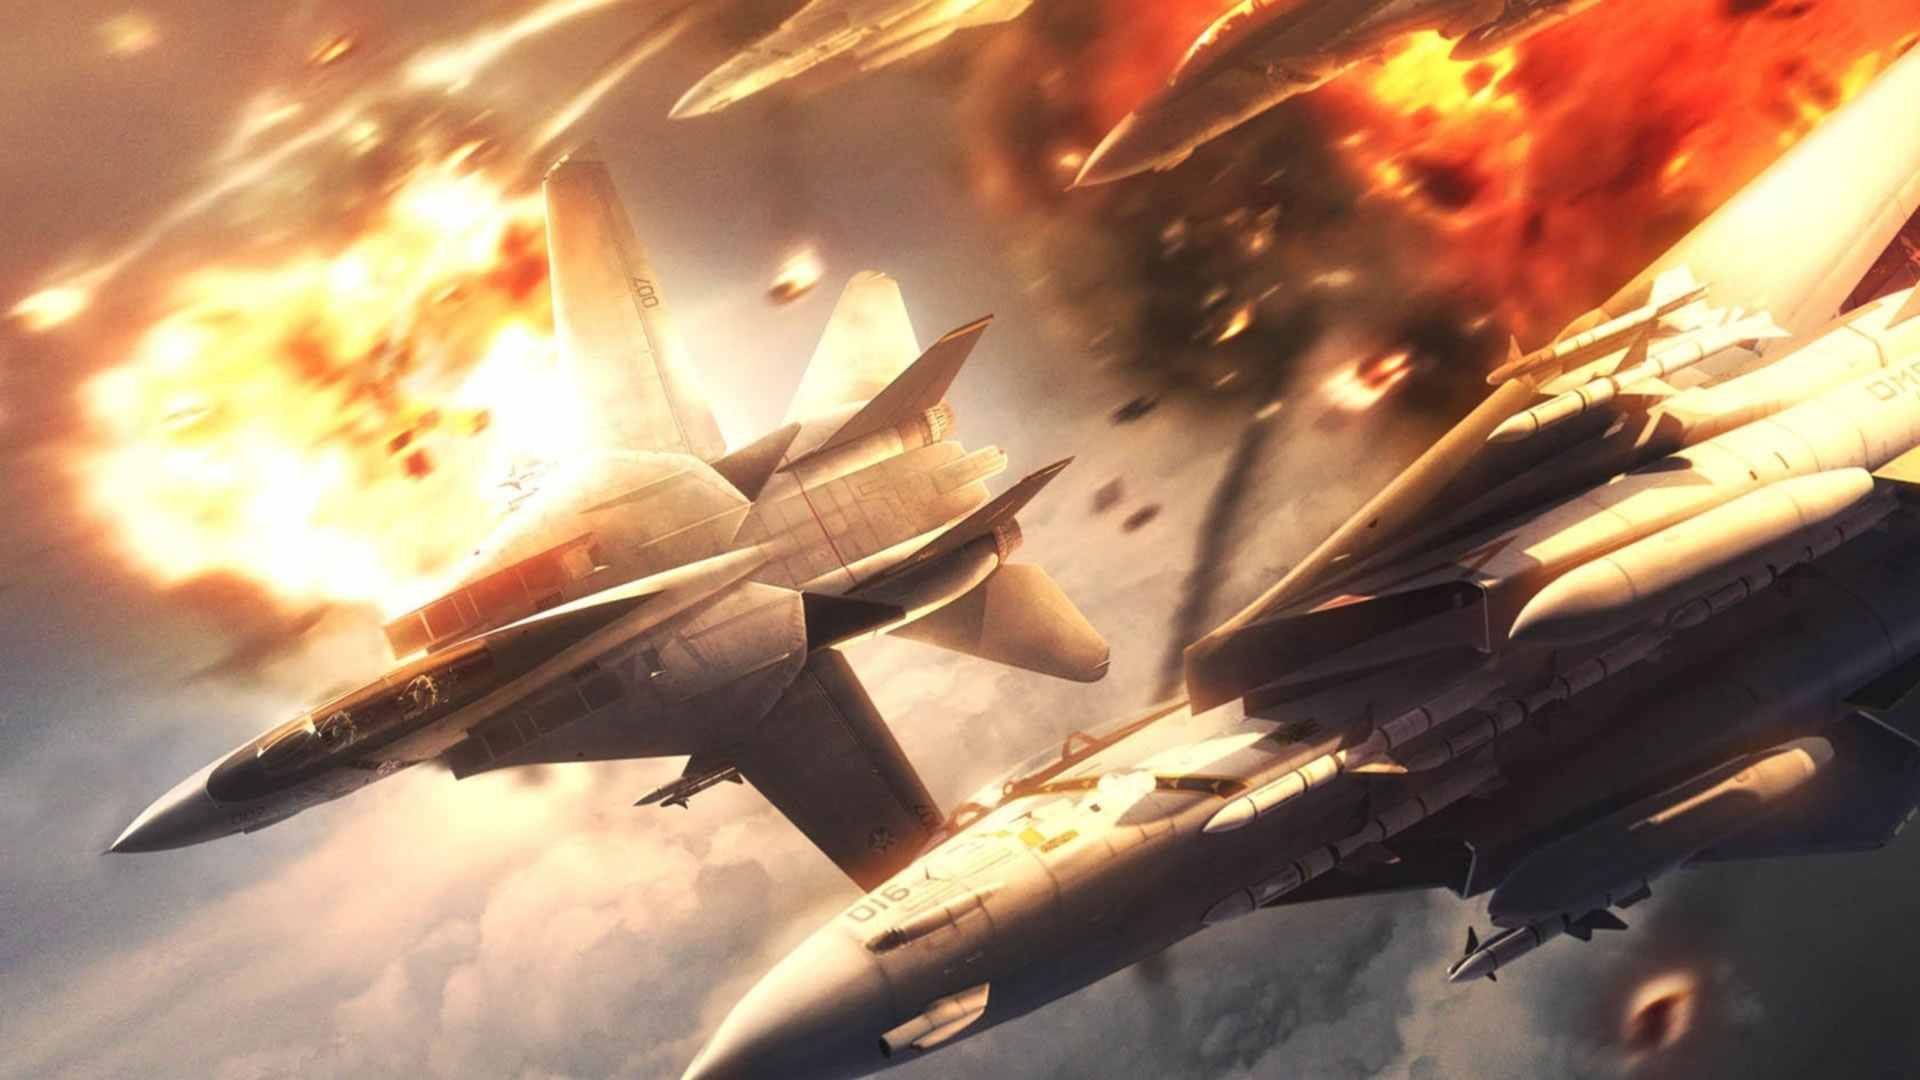 Ace Combat 5 dogfight | Game pictures | Fighter jets, Fighter